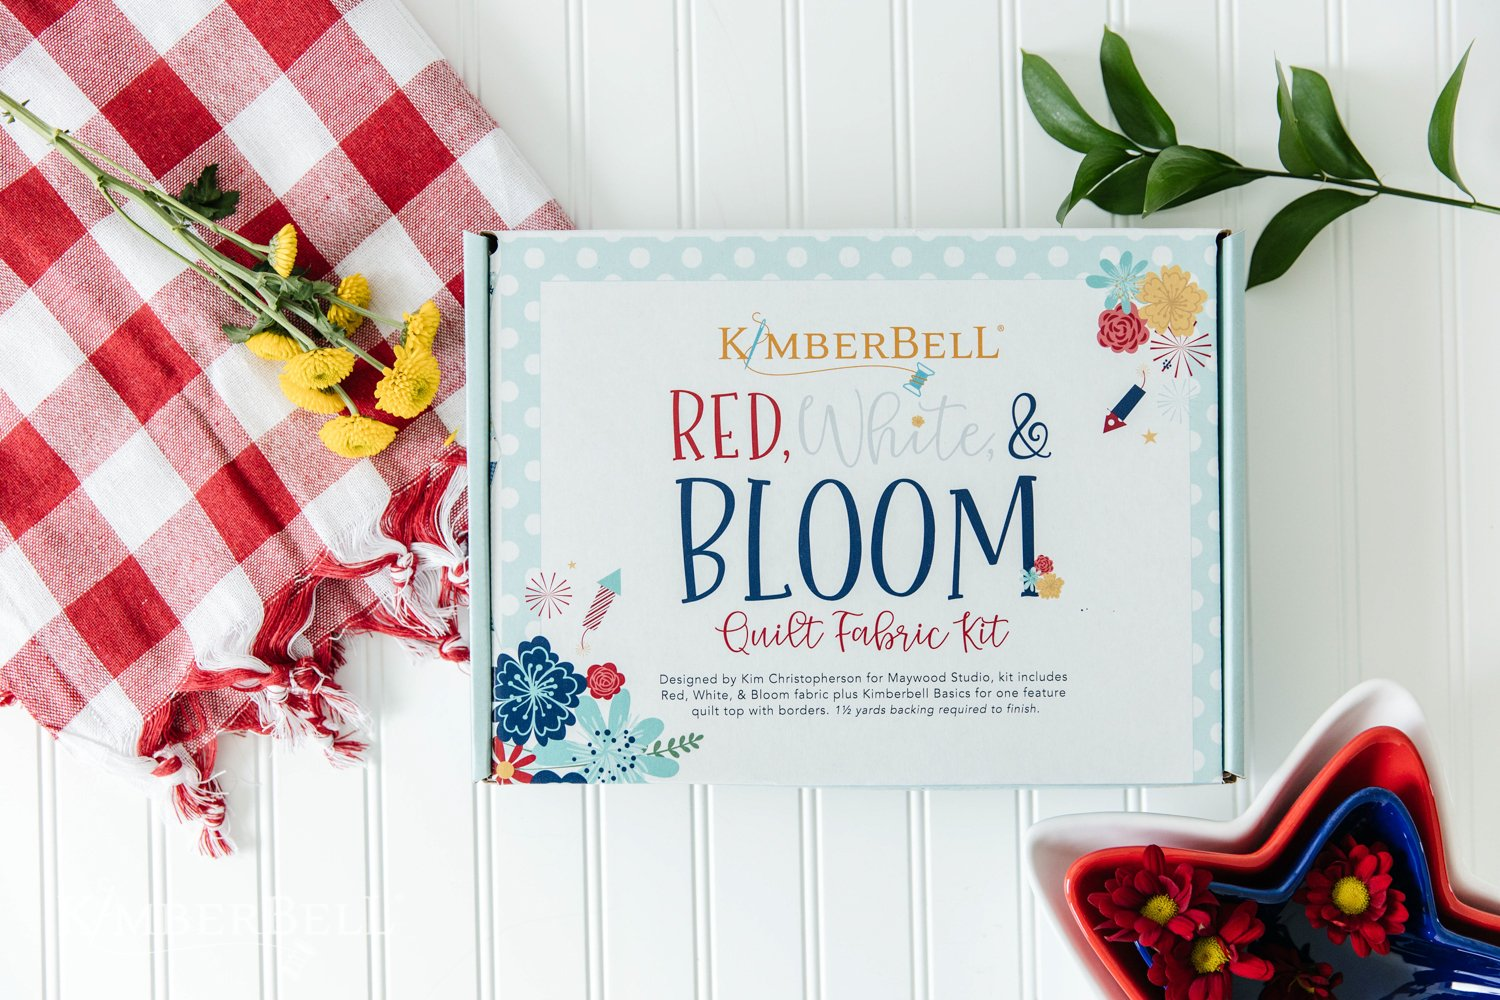 Red, White & Bloom Fabric Kit